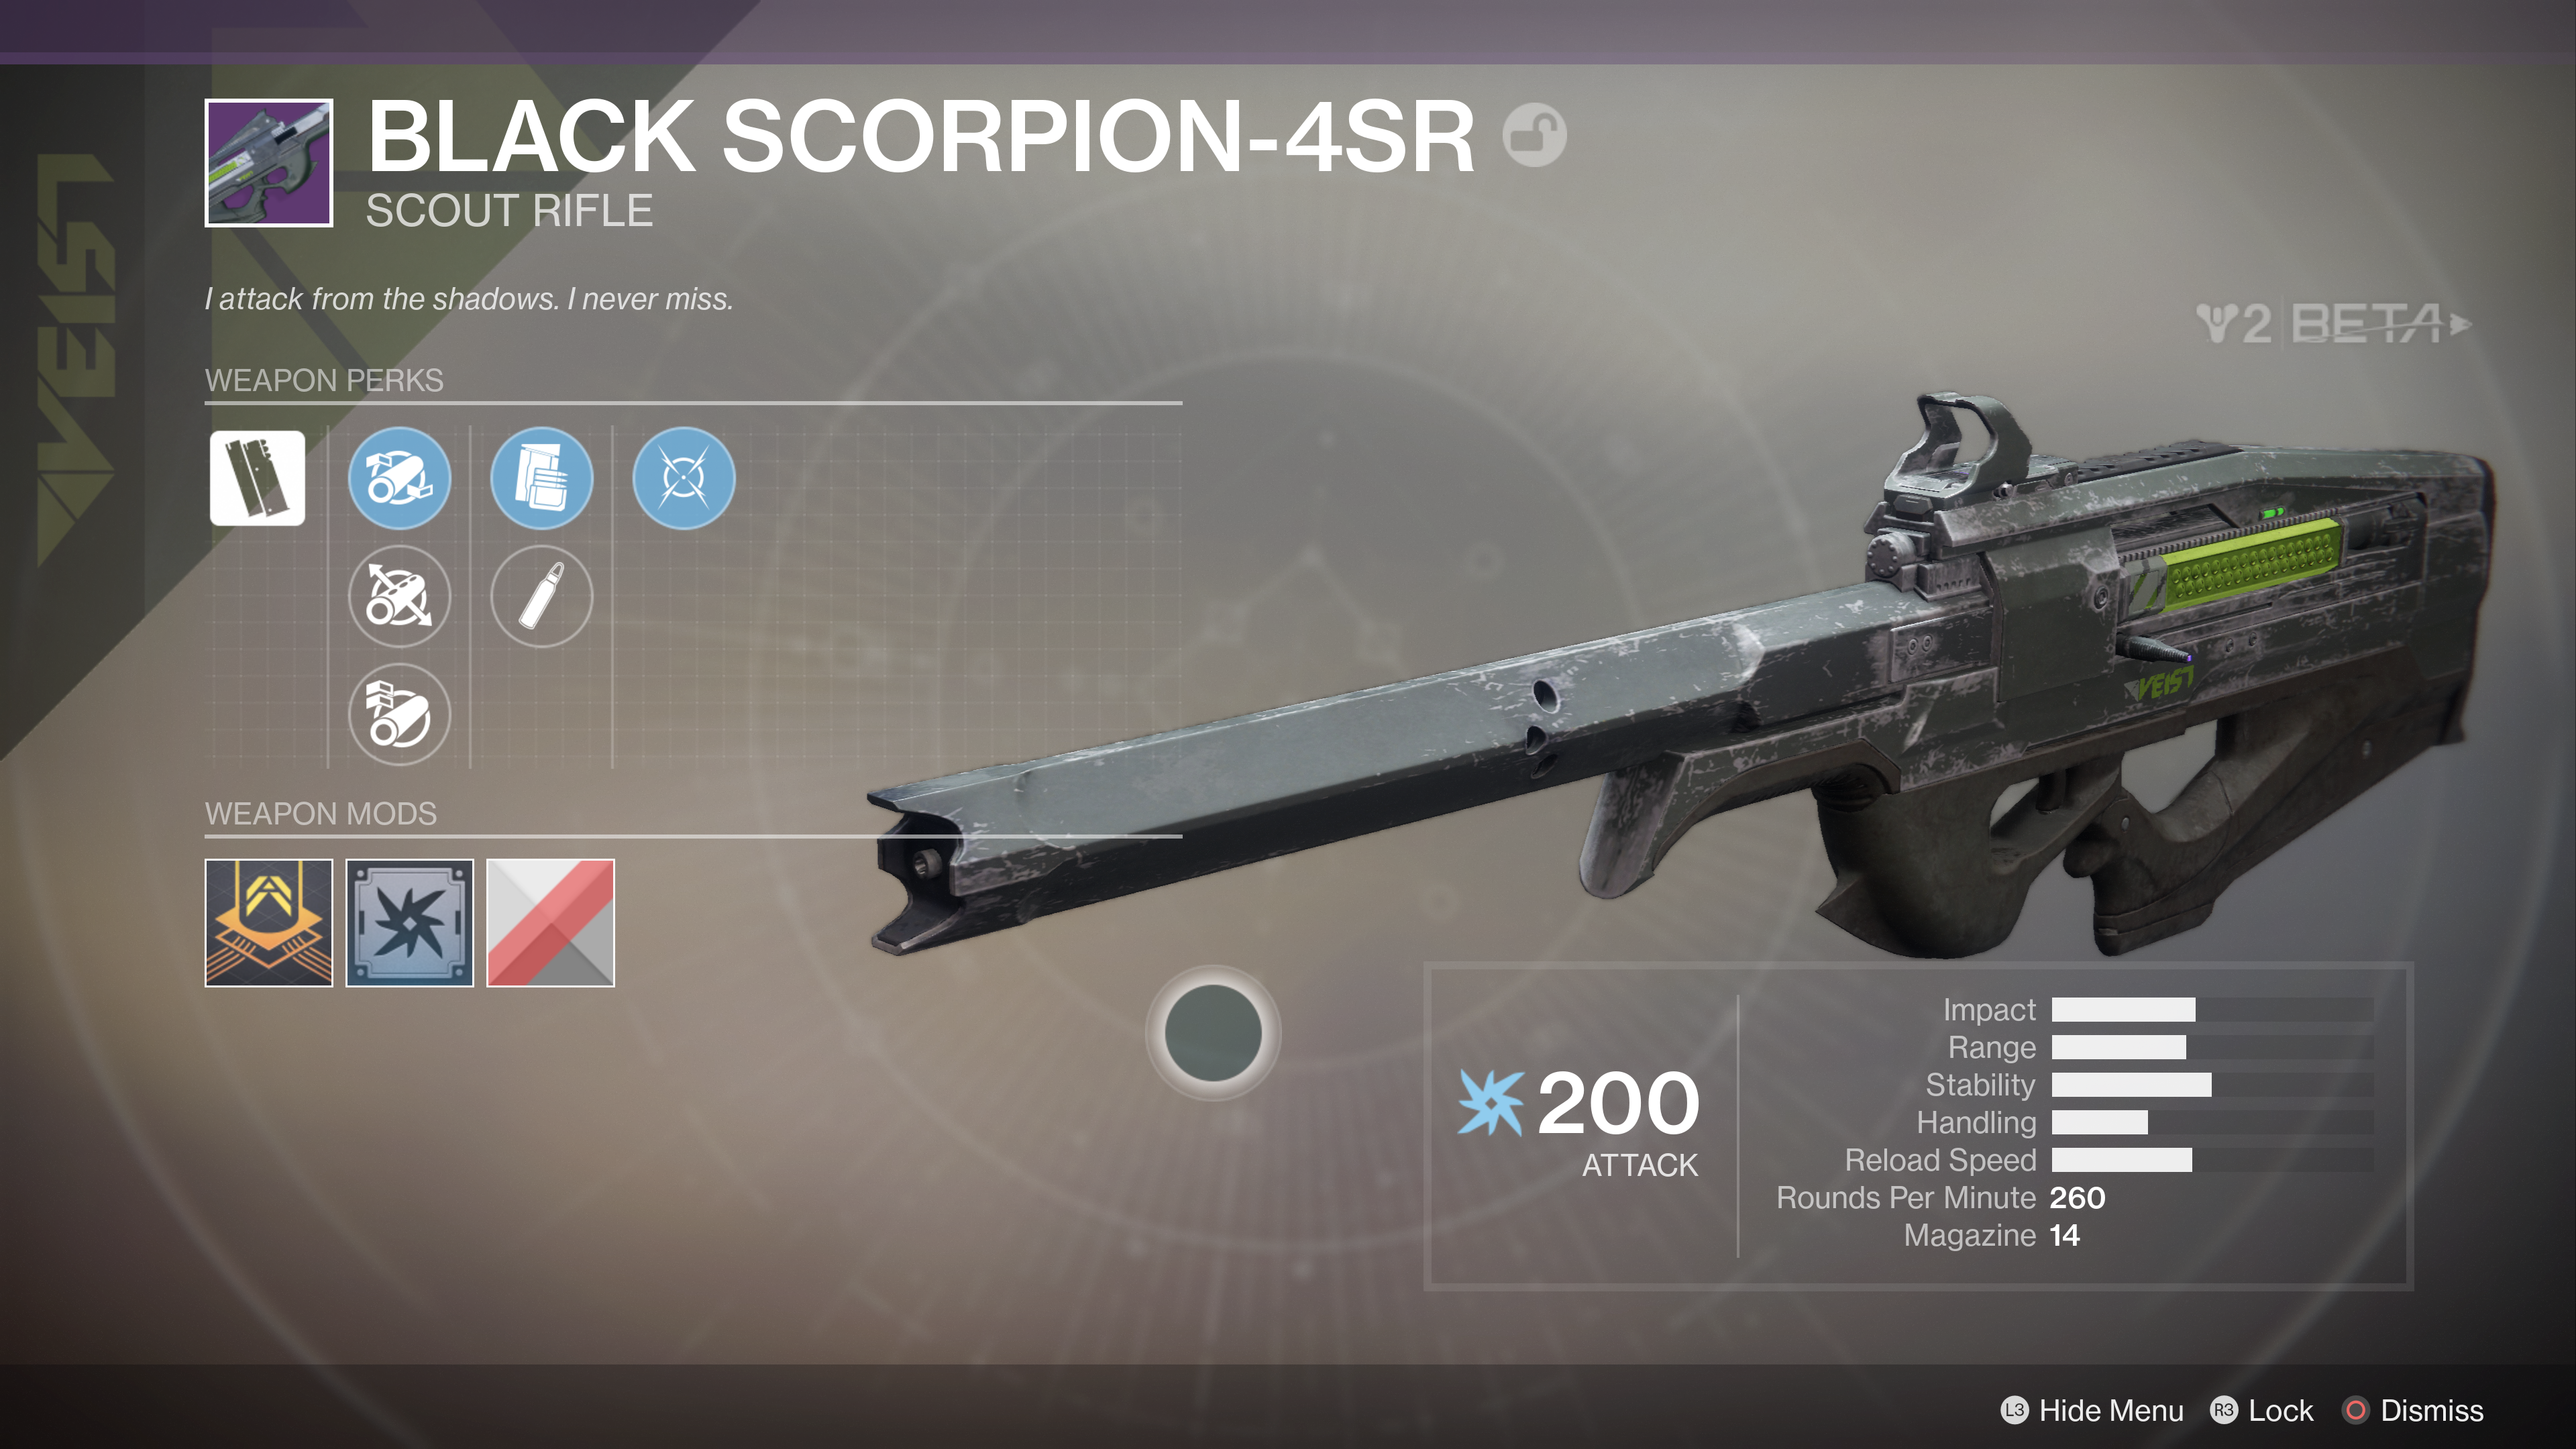 destiny 2 beta black scorpion-4sr